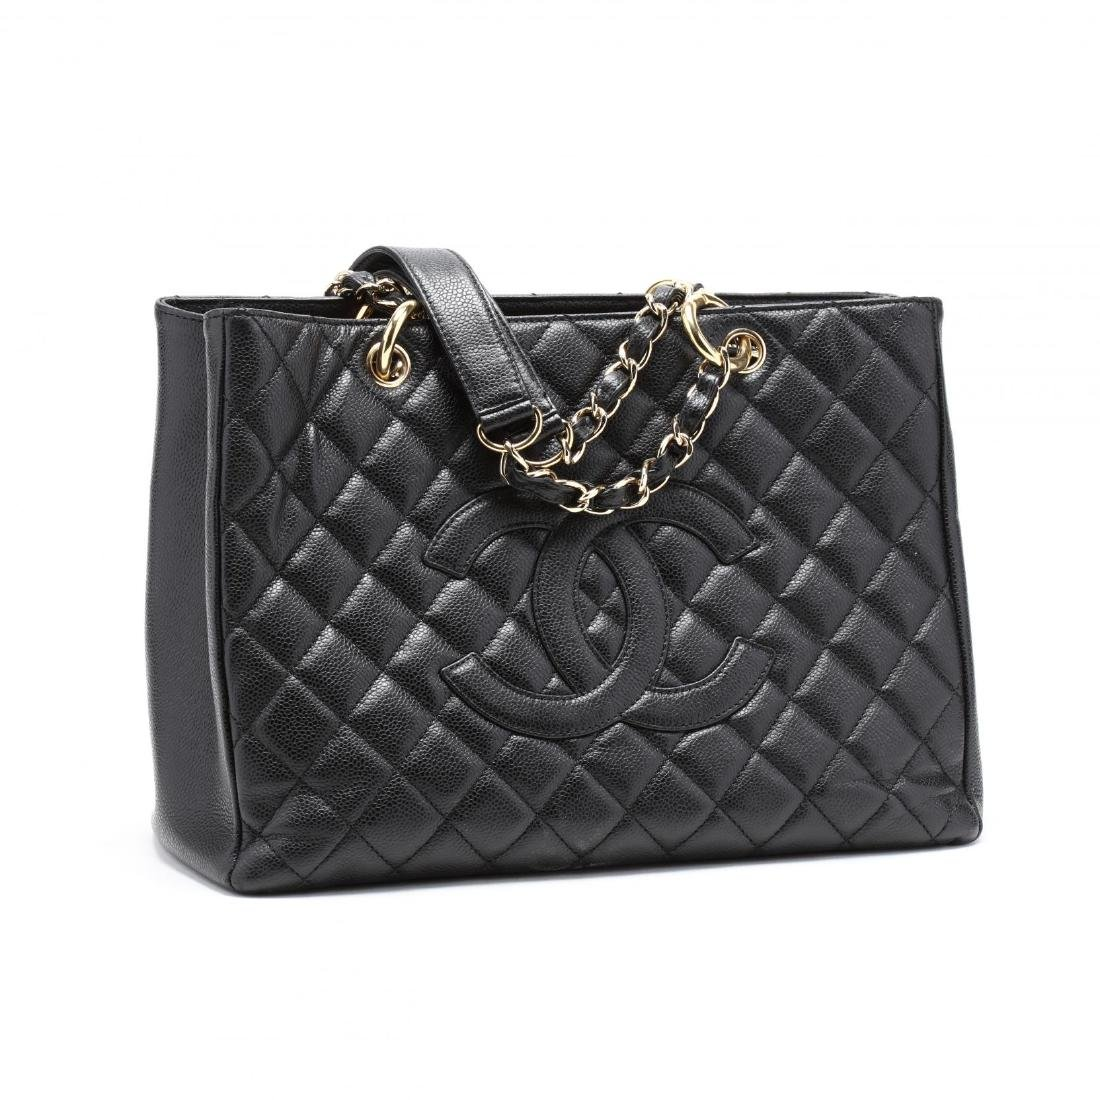 Quilted Black Caviar Leather Grand Shopping Tote - 4